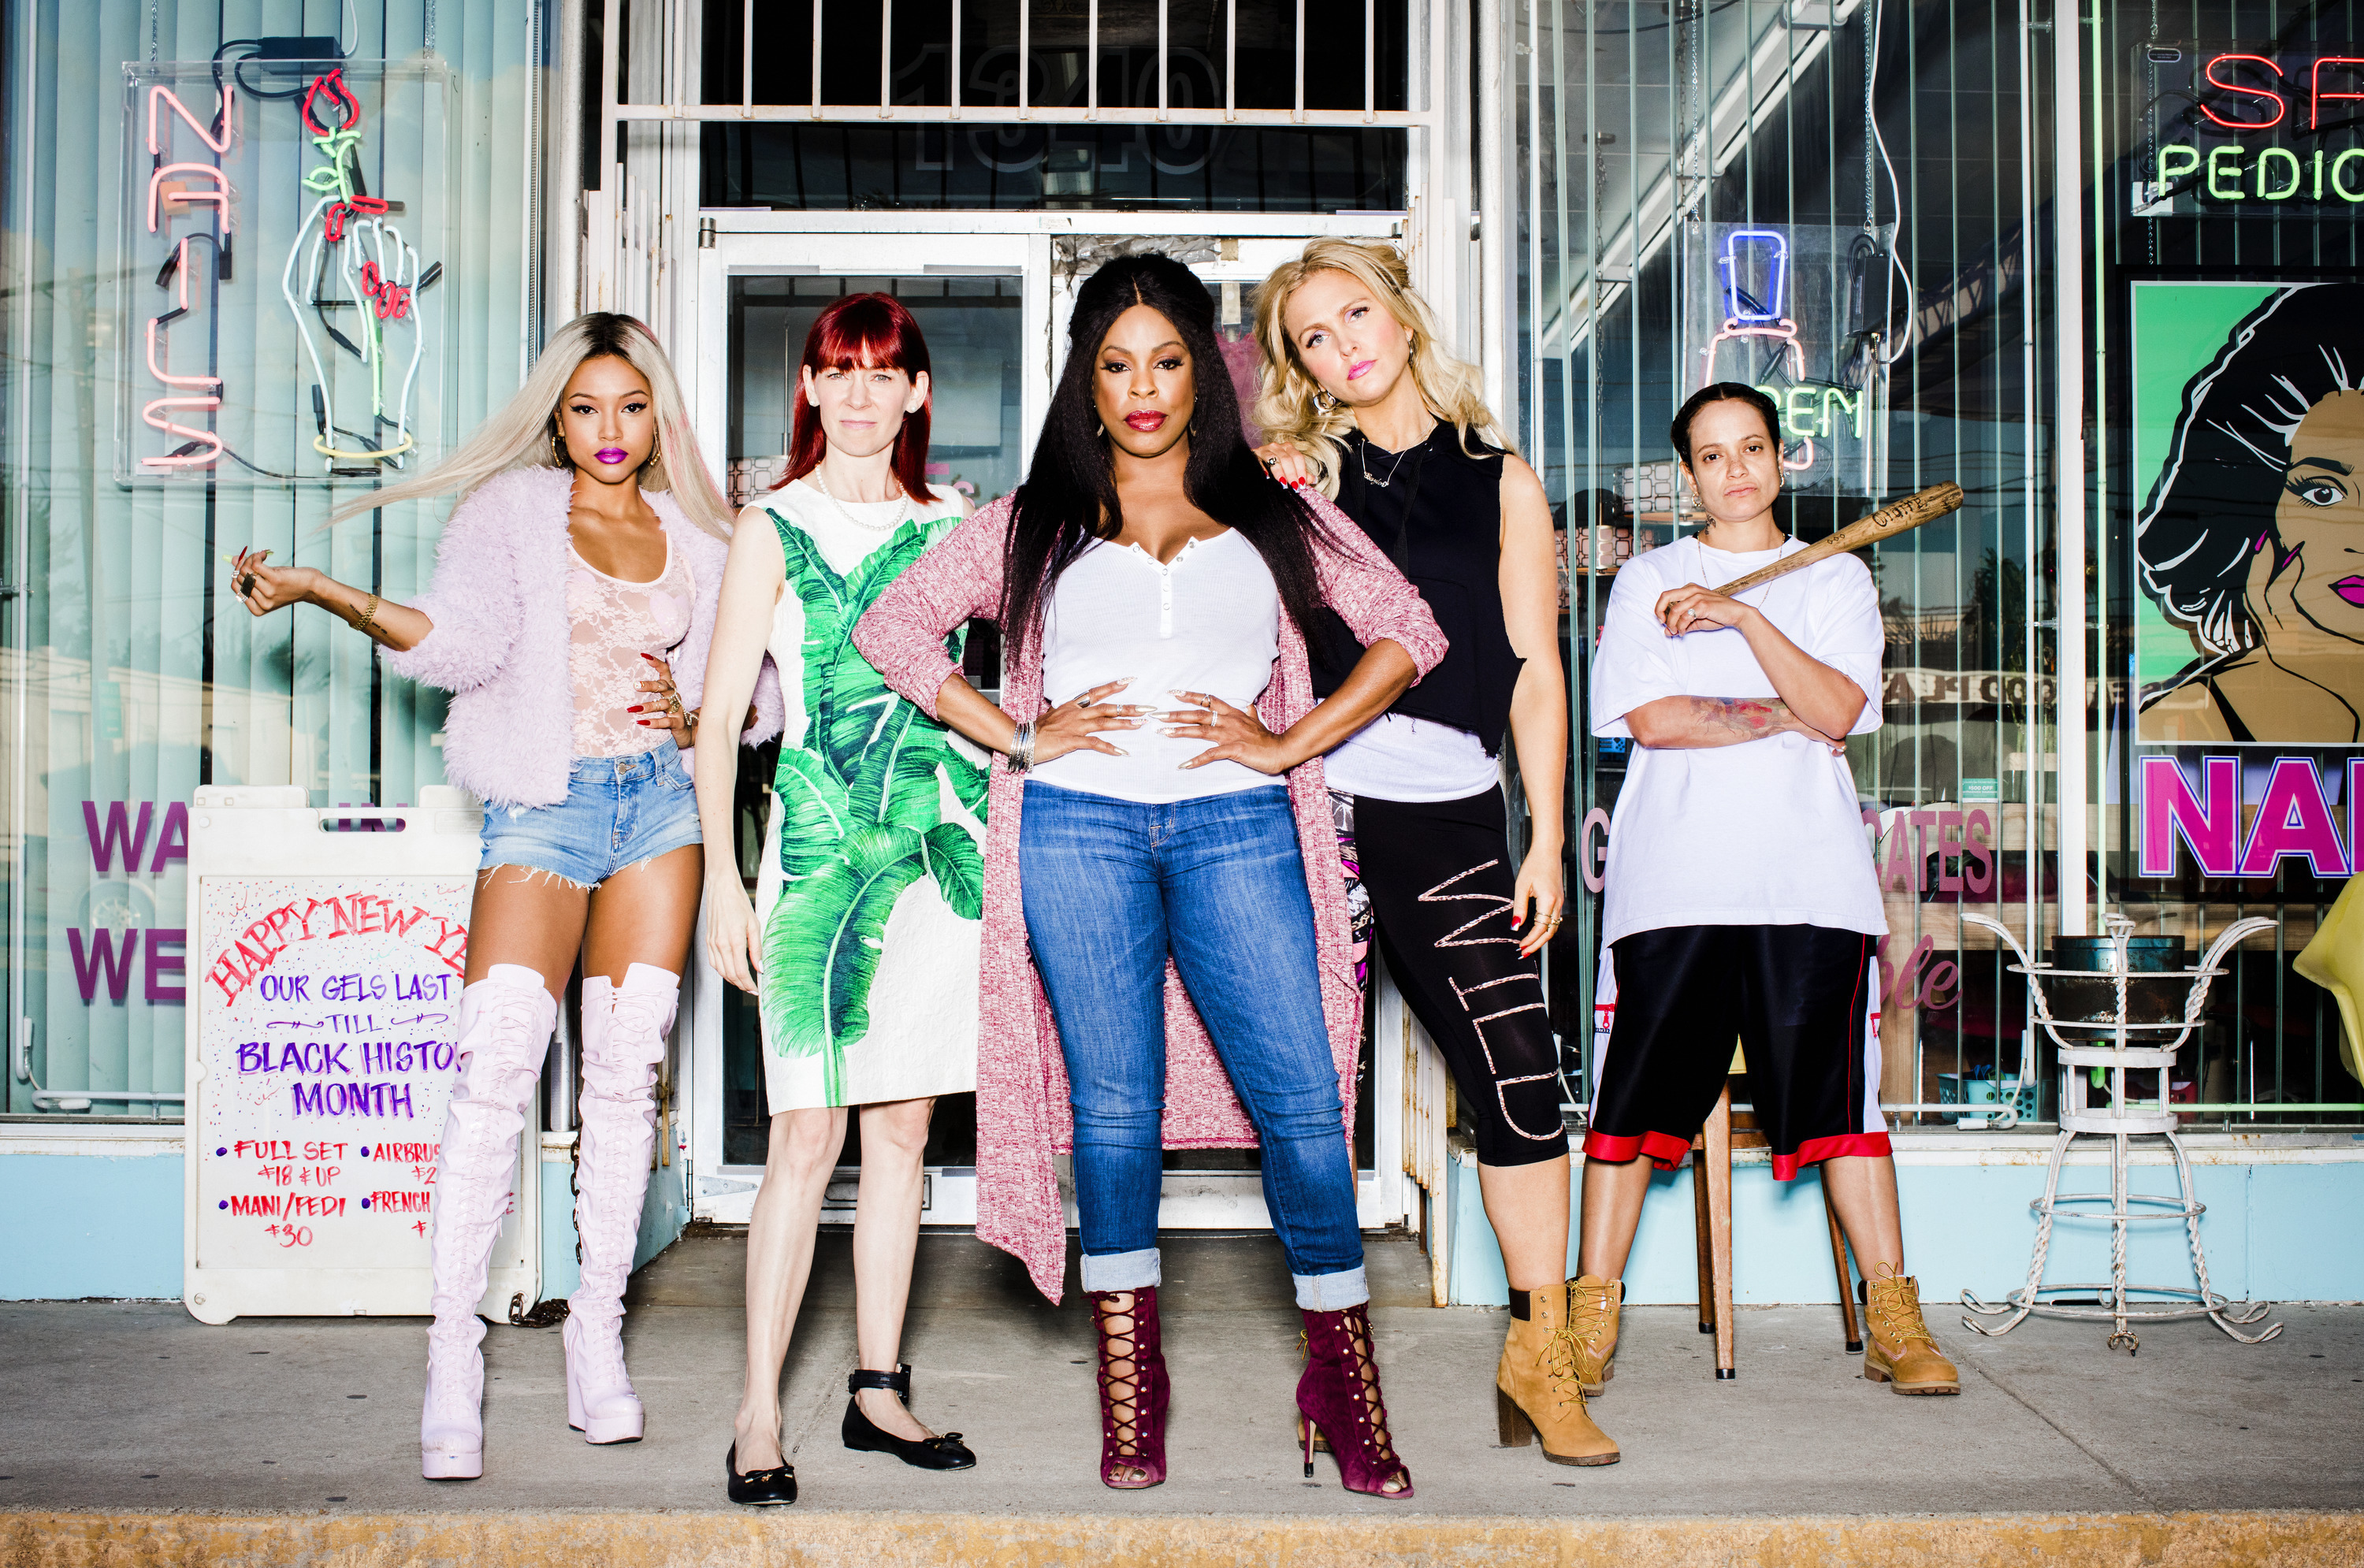 claws tnt previews their nail salon dramedy video canceled tv shows tv series finale. Black Bedroom Furniture Sets. Home Design Ideas